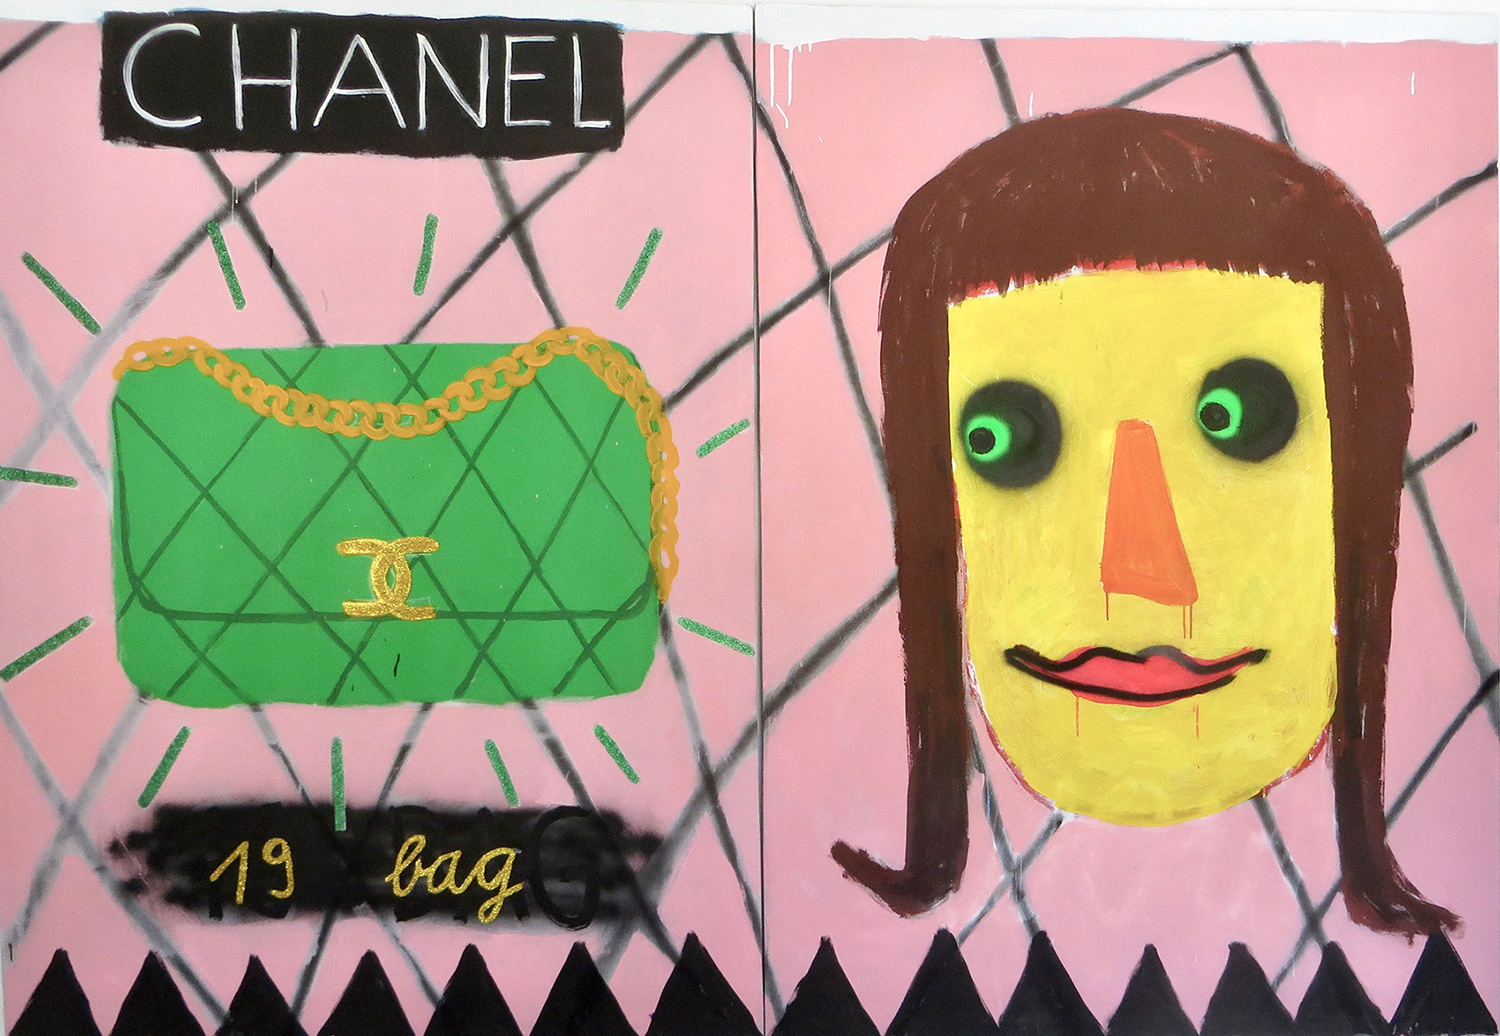 channel painting, bag, portrait, artist, gabrielle graessle,